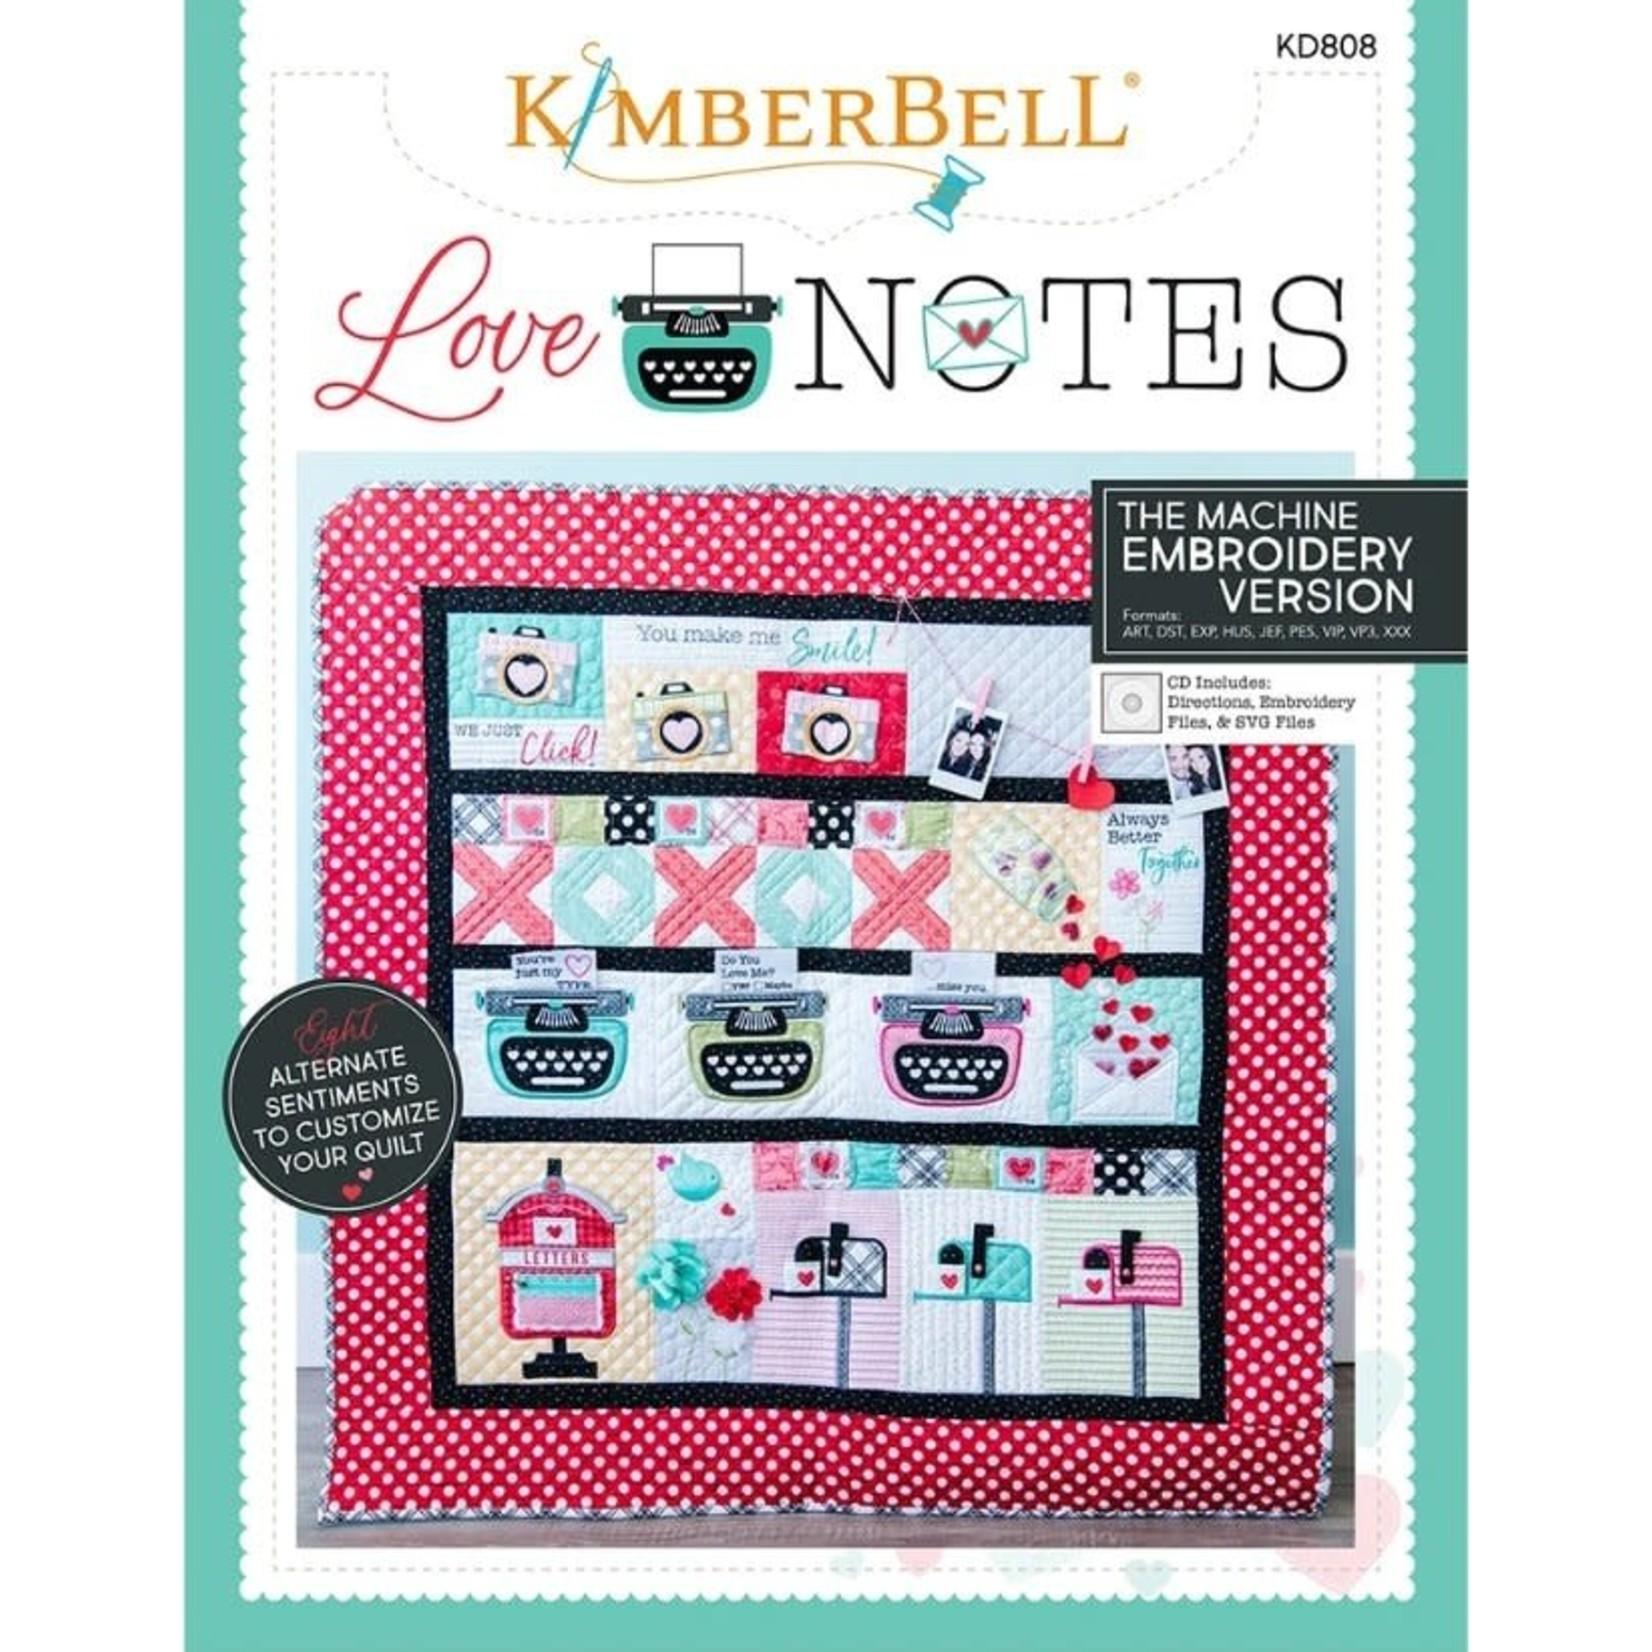 KIMBERBELL DESIGNS Love Notes Mystery Quilt - Embroidery only version